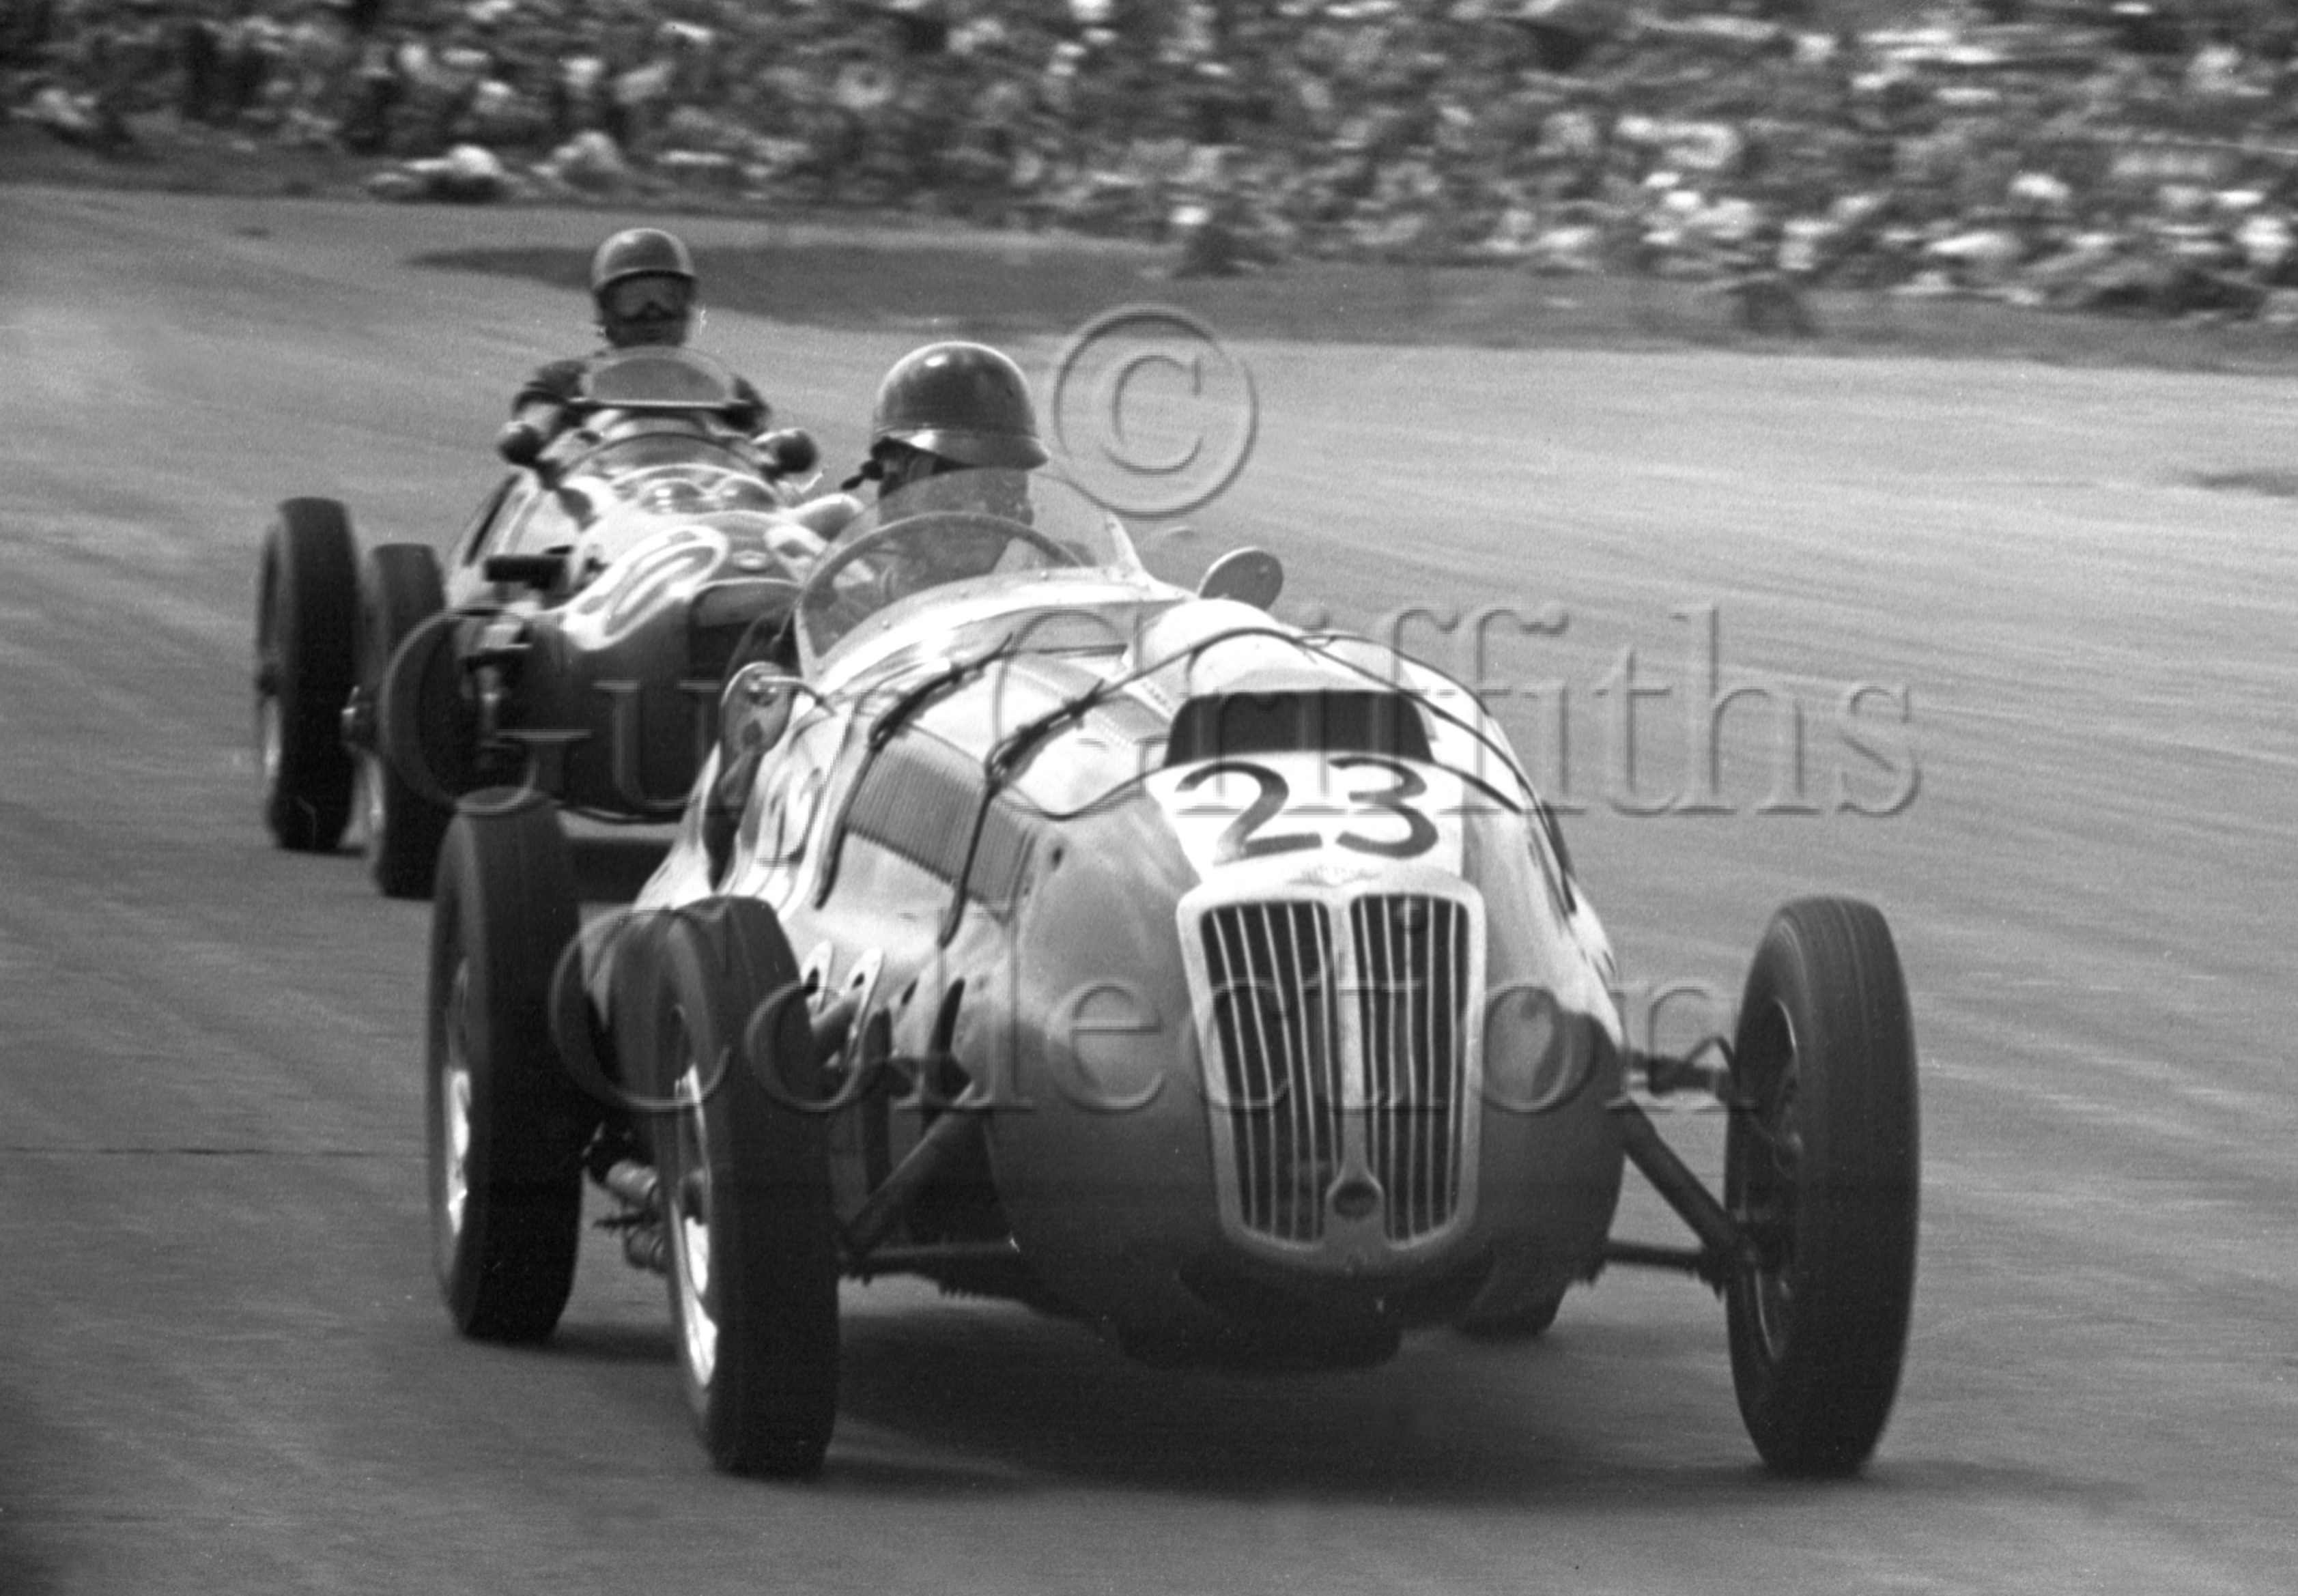 57-995–T-Crook–Frazer-Nash–Silverstone–19-07-1952.jpg - The Guy Griffiths Collection